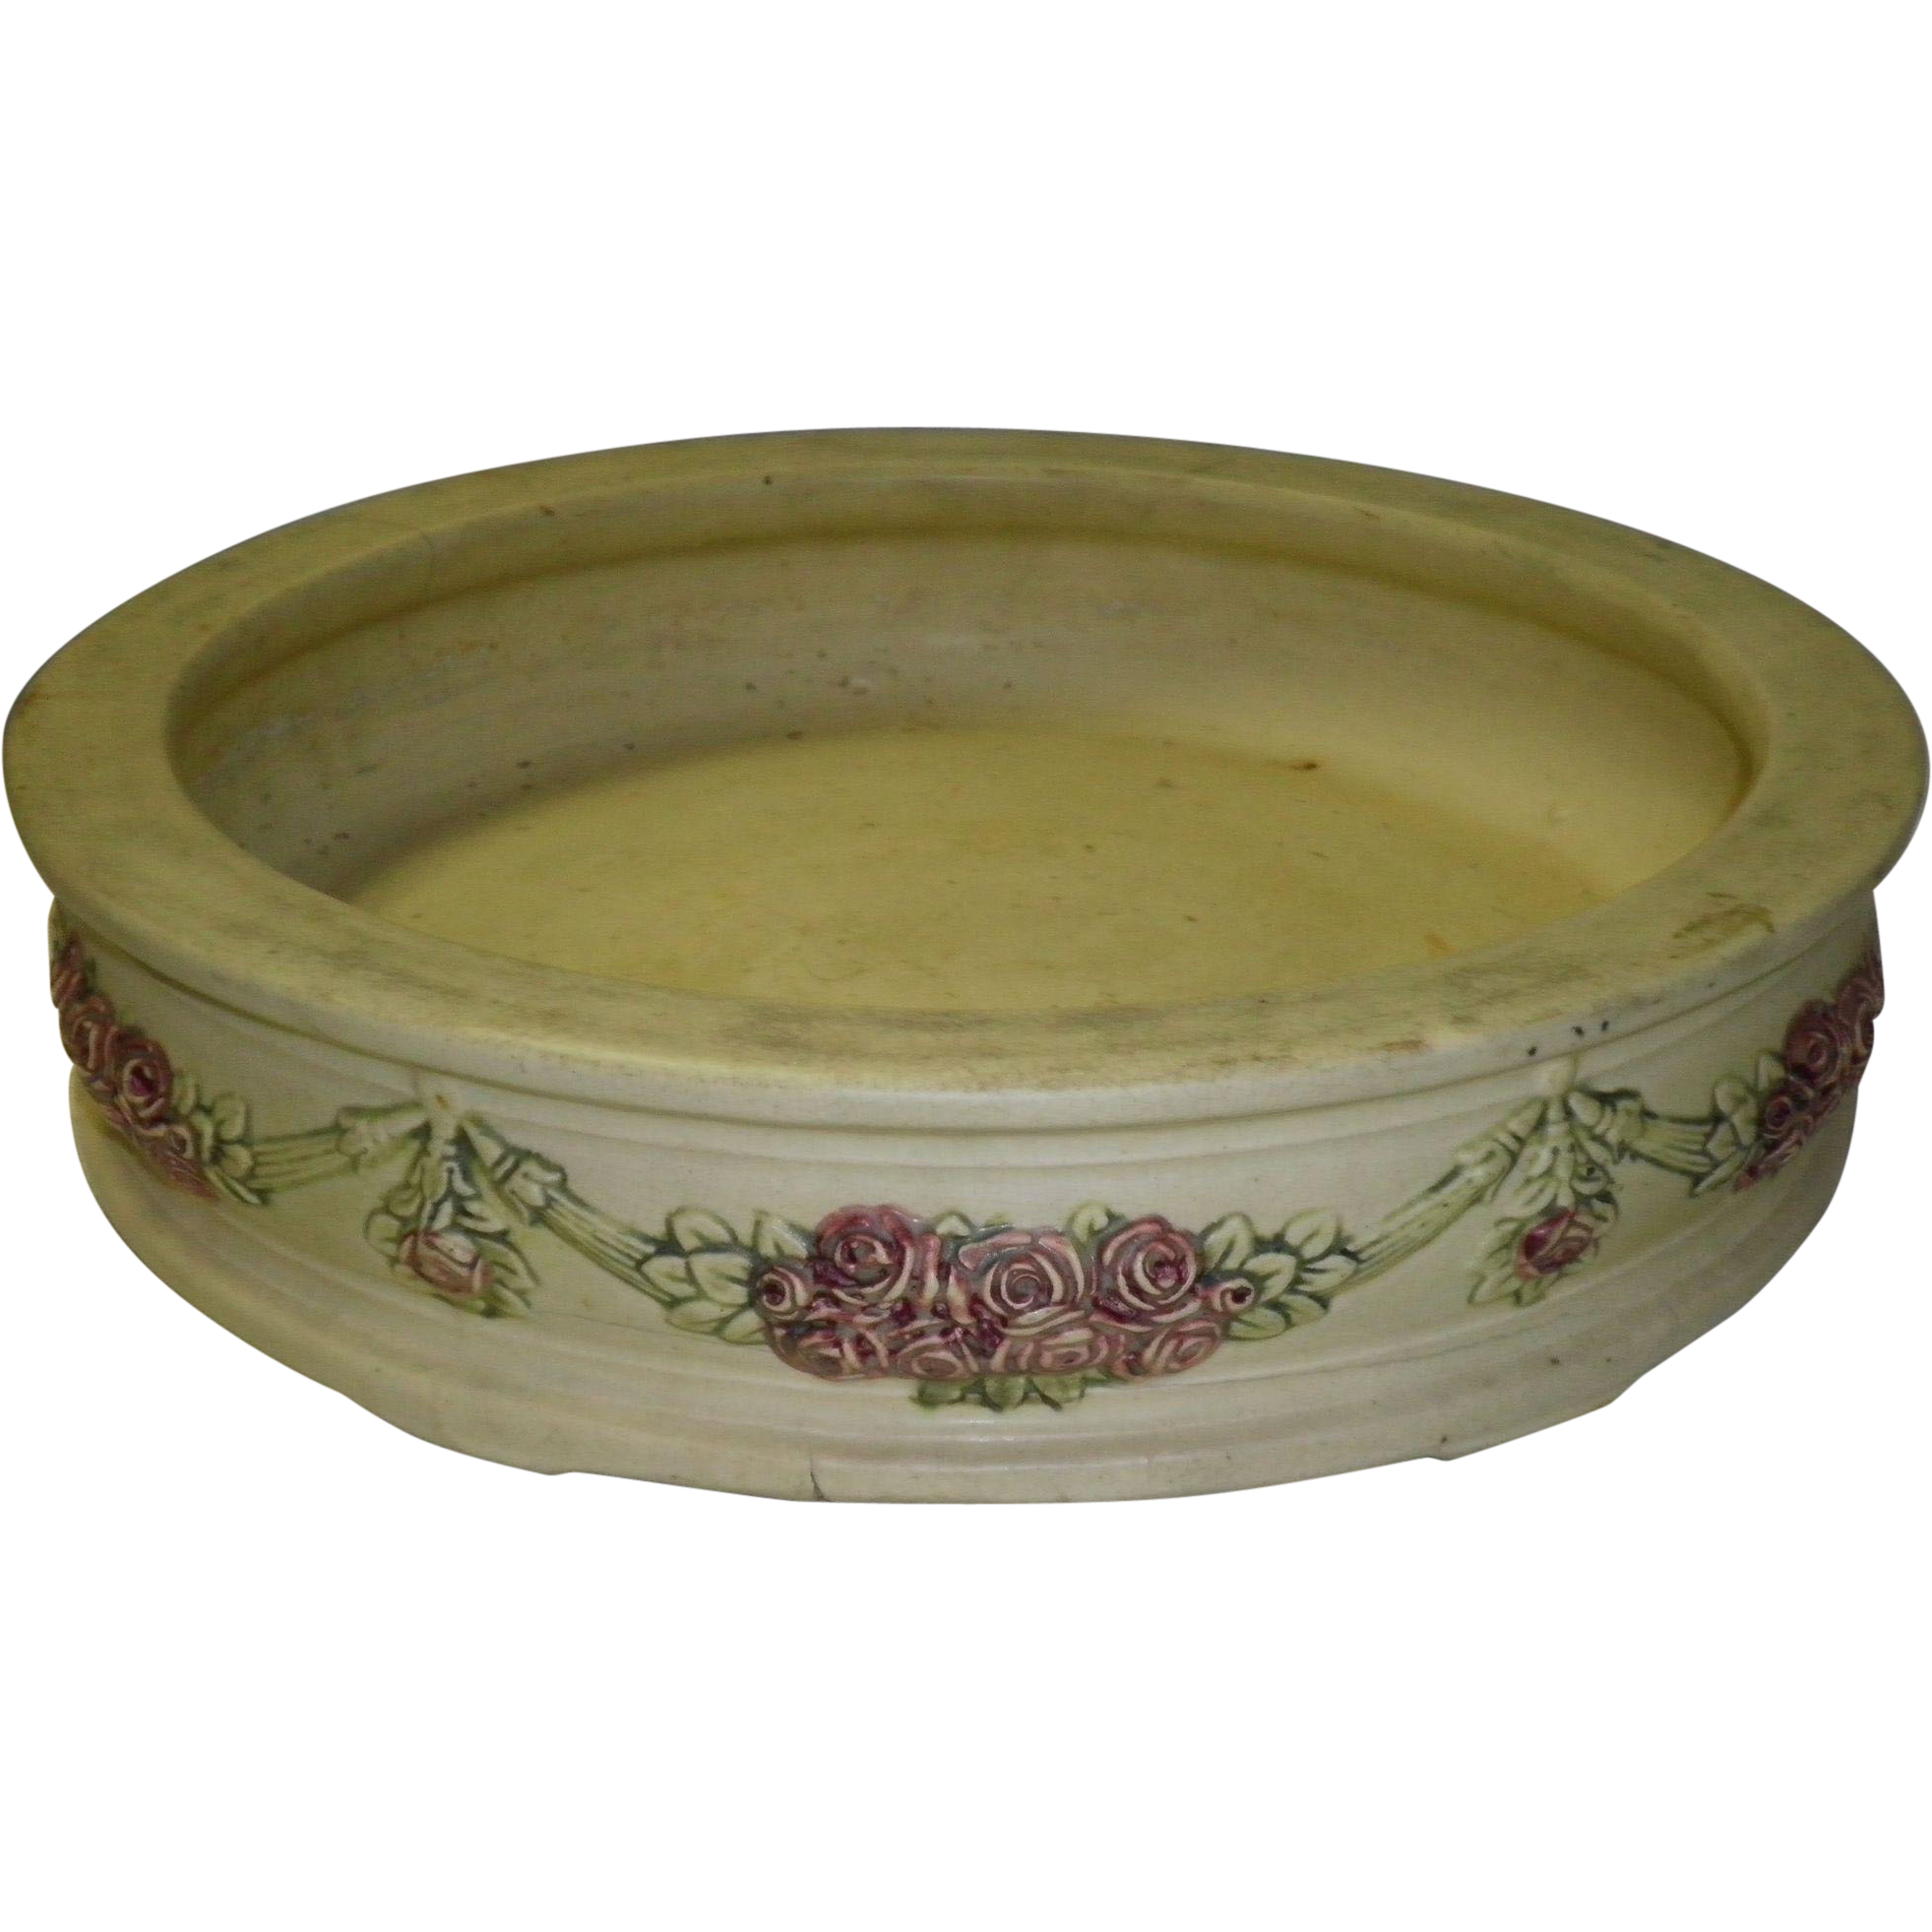 Weller Roma Pottery Console Bowl Flat Planter